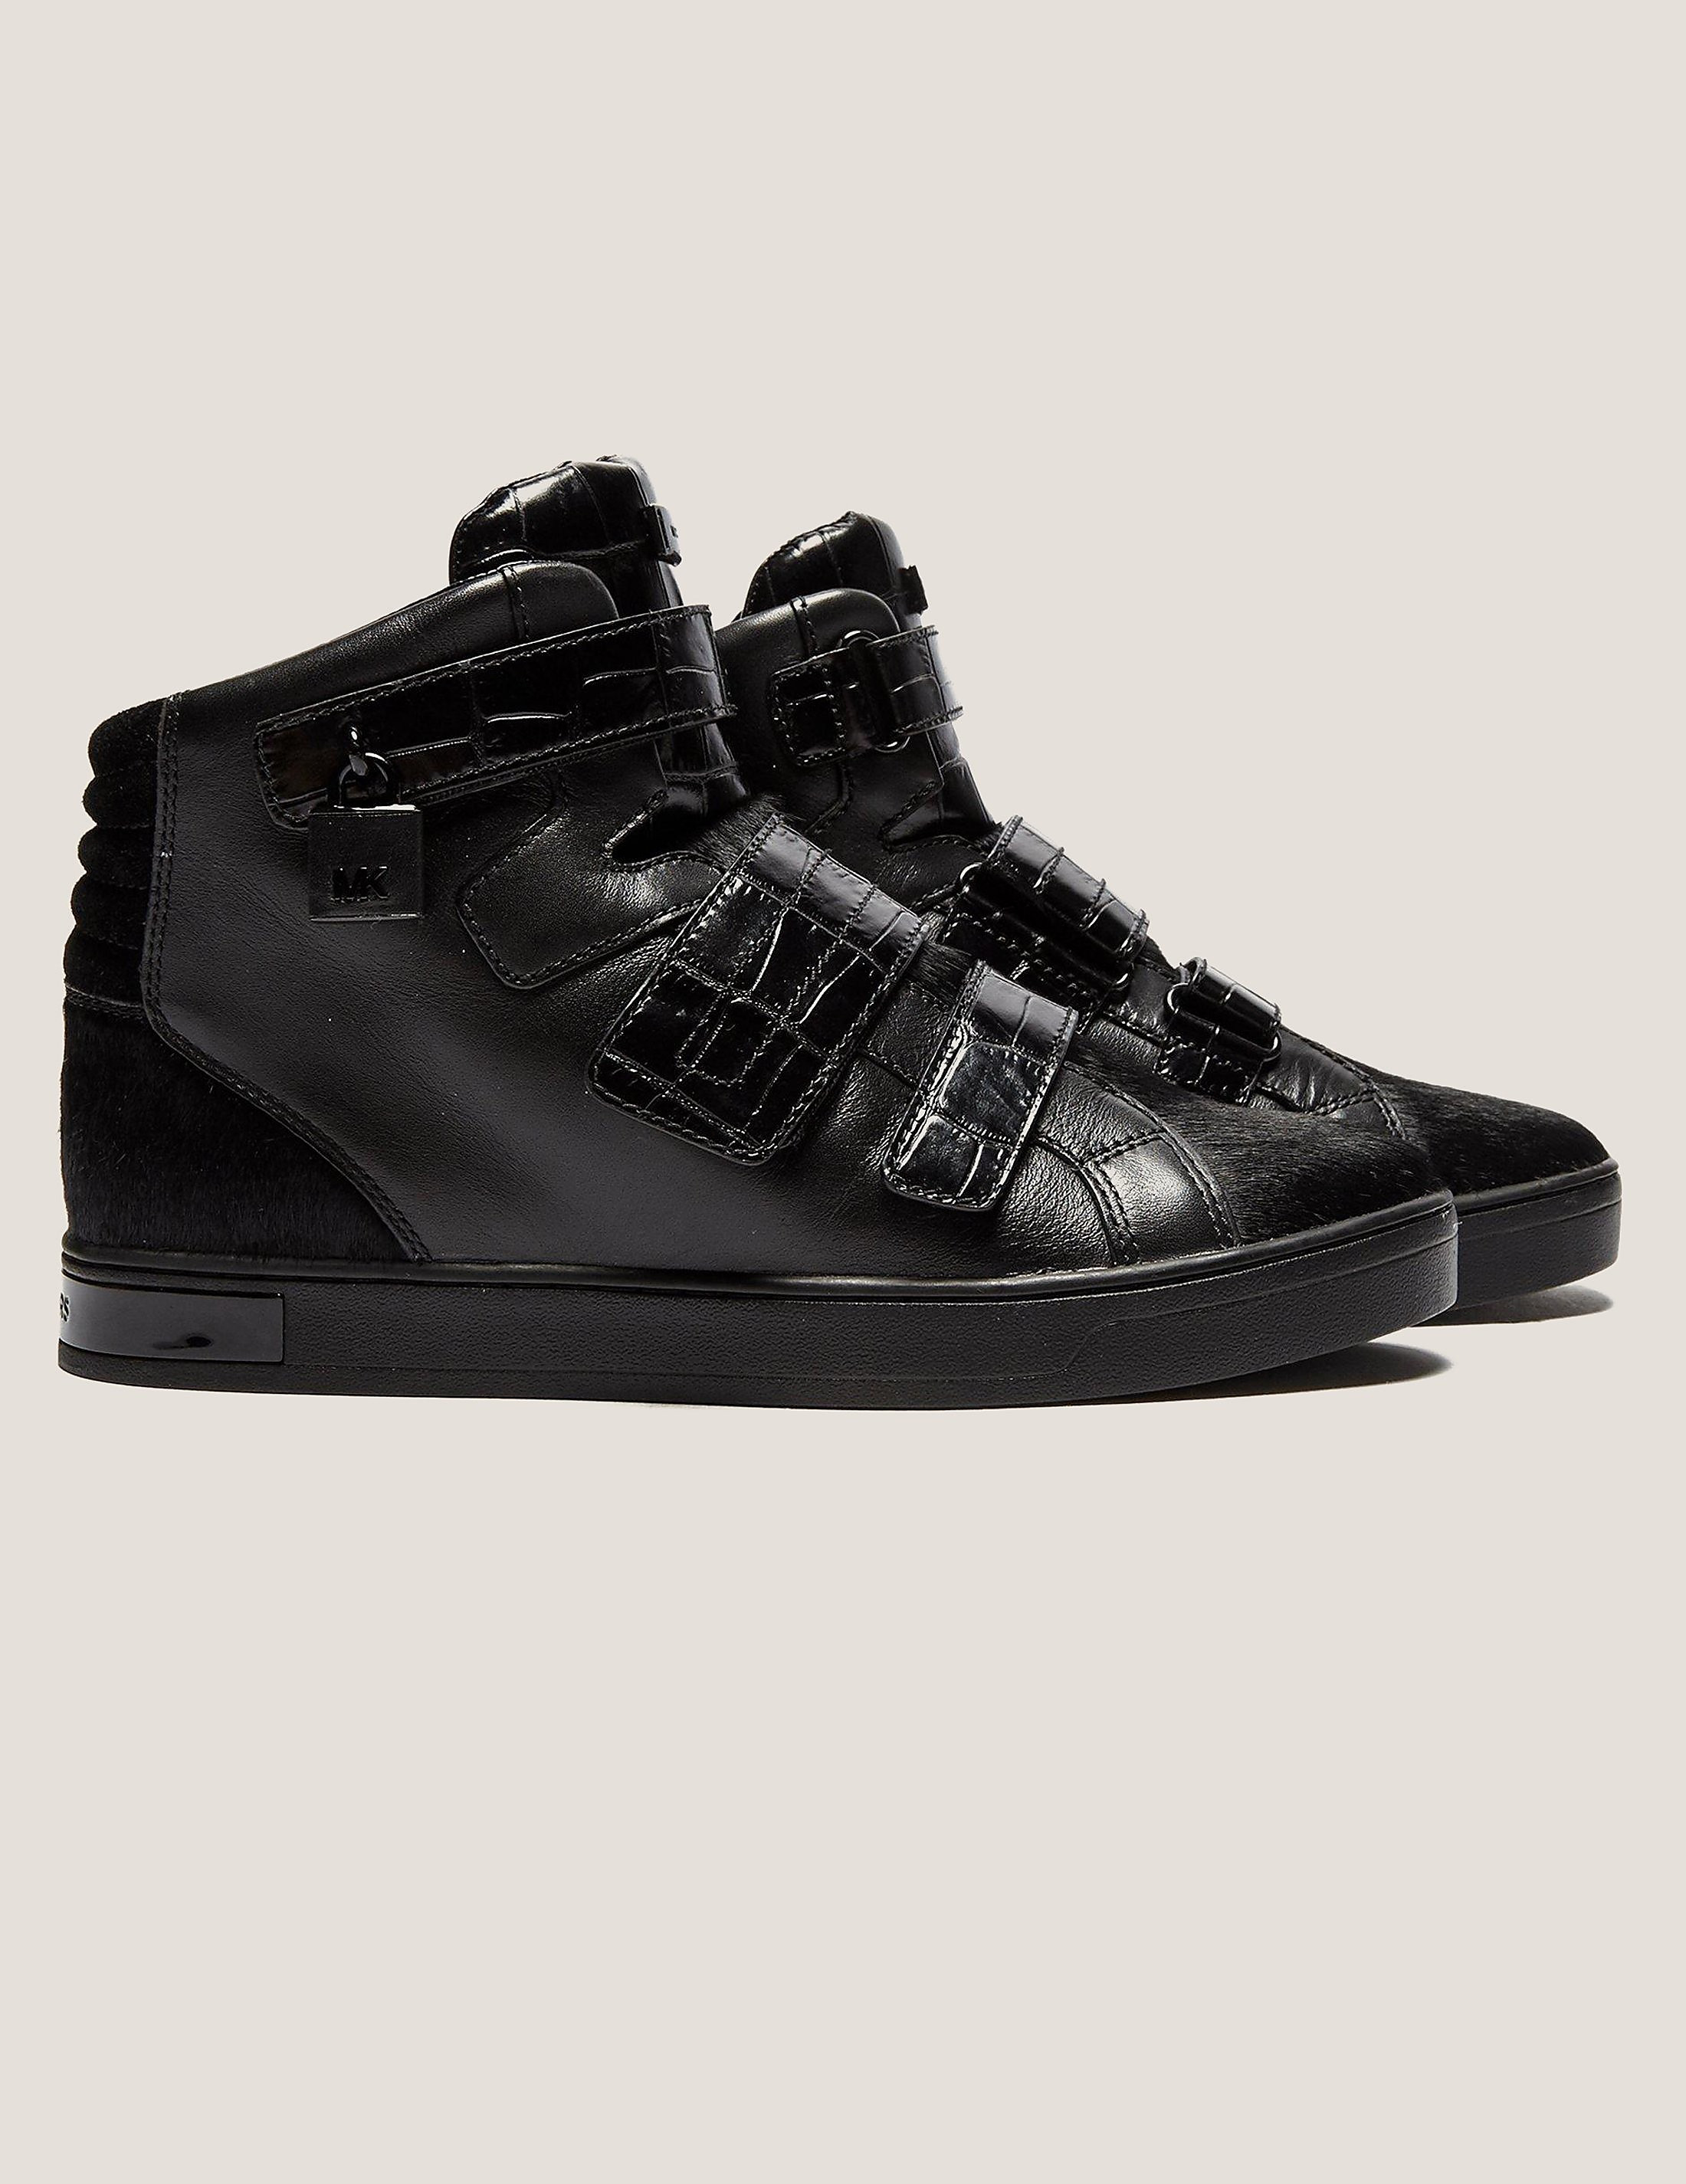 Michael Kors Randi High Top Boots